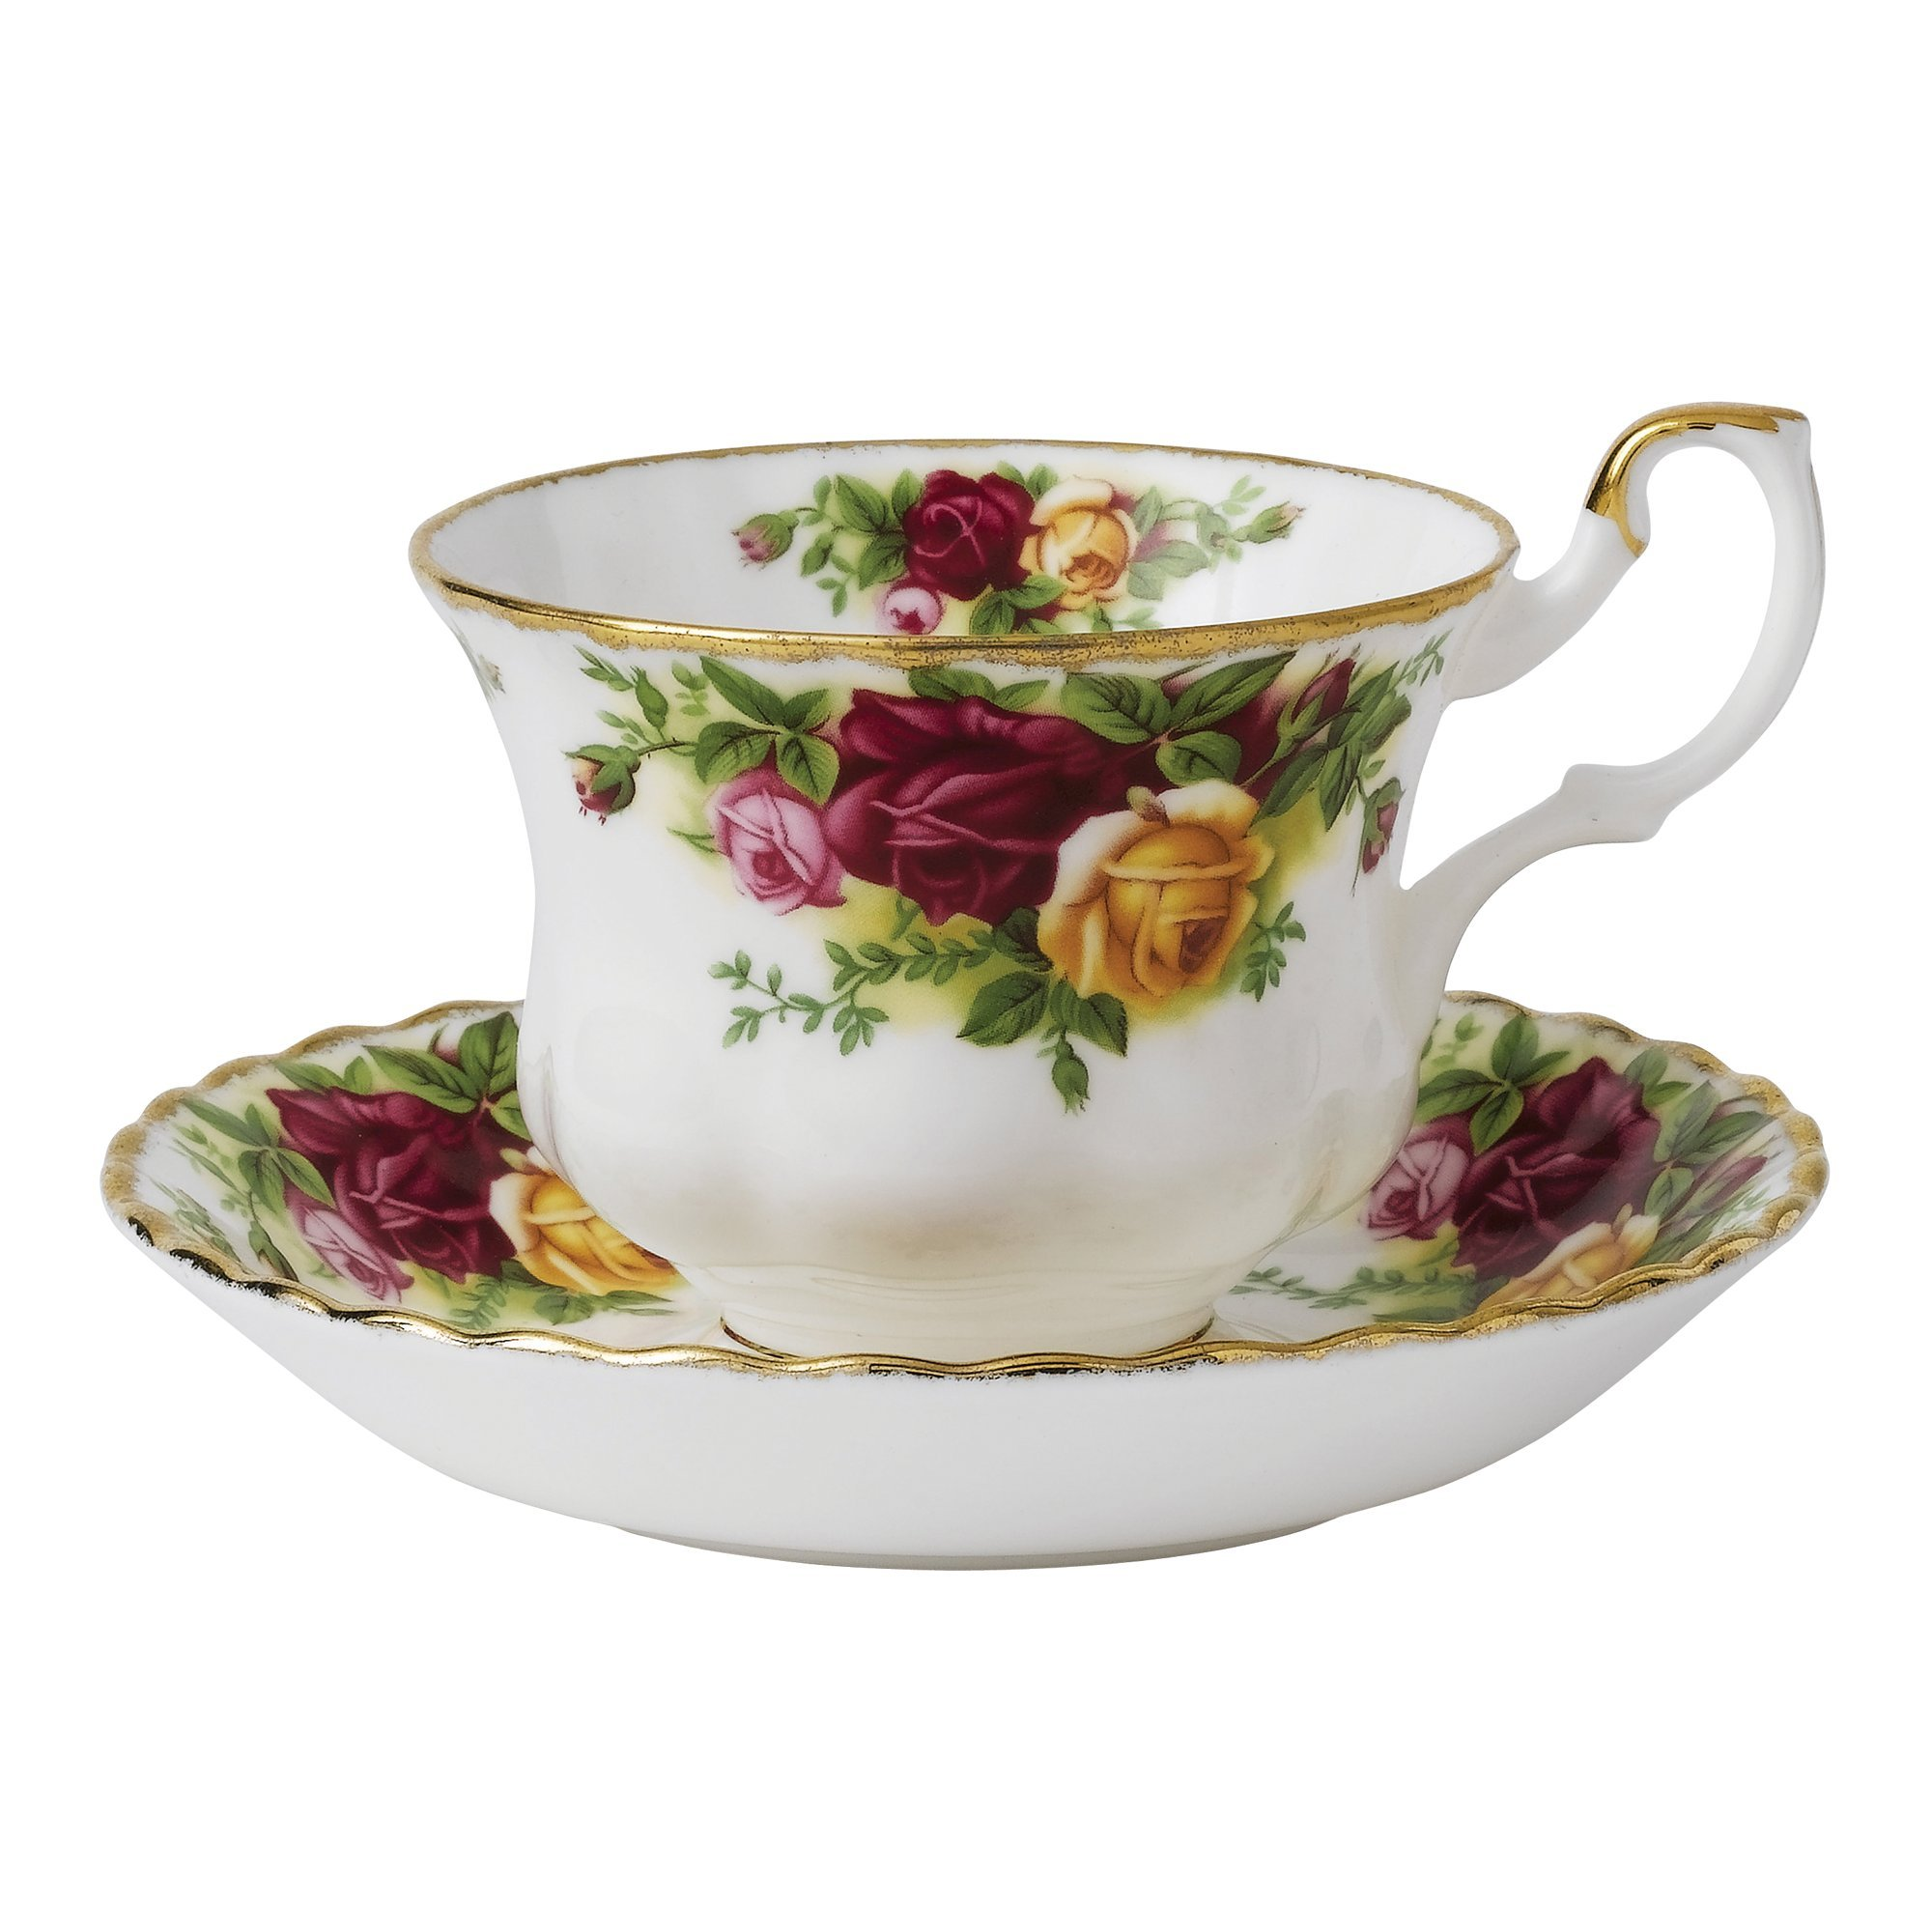 Royal Albert Old Country Roses Teacup & Saucer Set